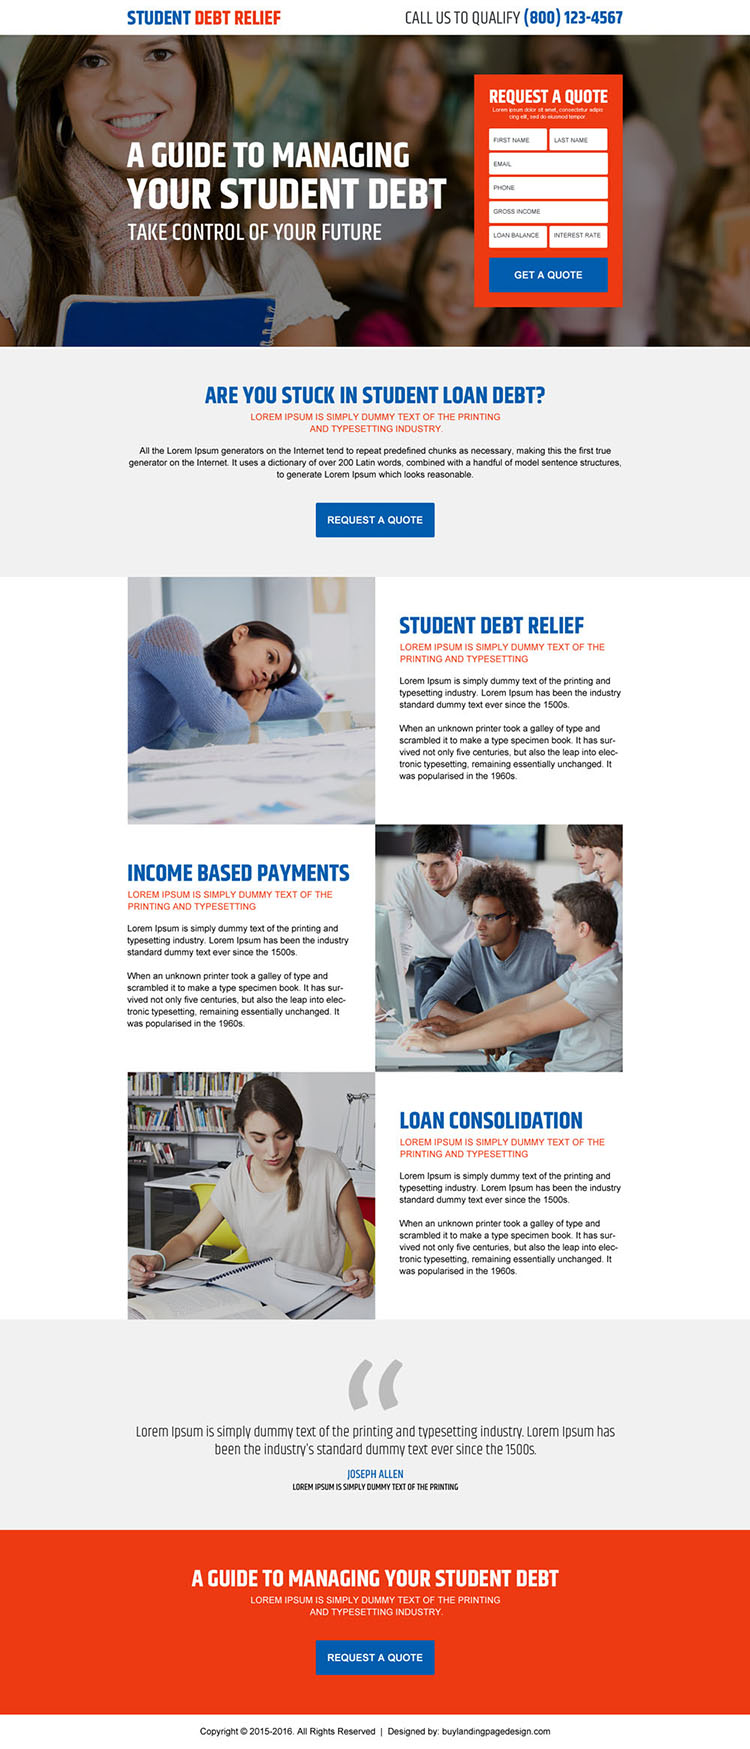 student debt relief guide converting landing page design